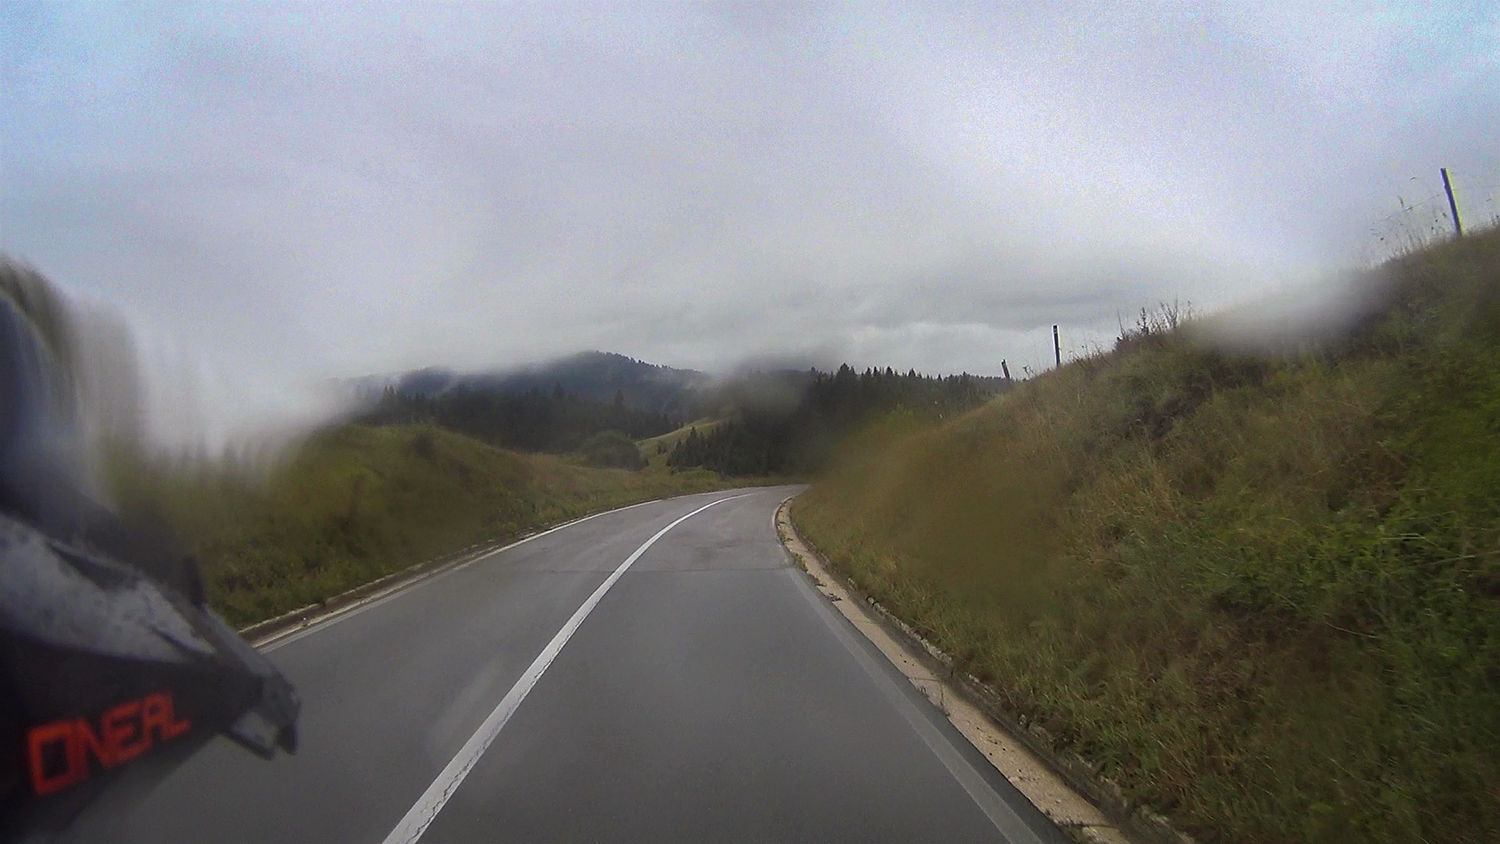 Foggy road P4 from Pljevlja to Zabljak